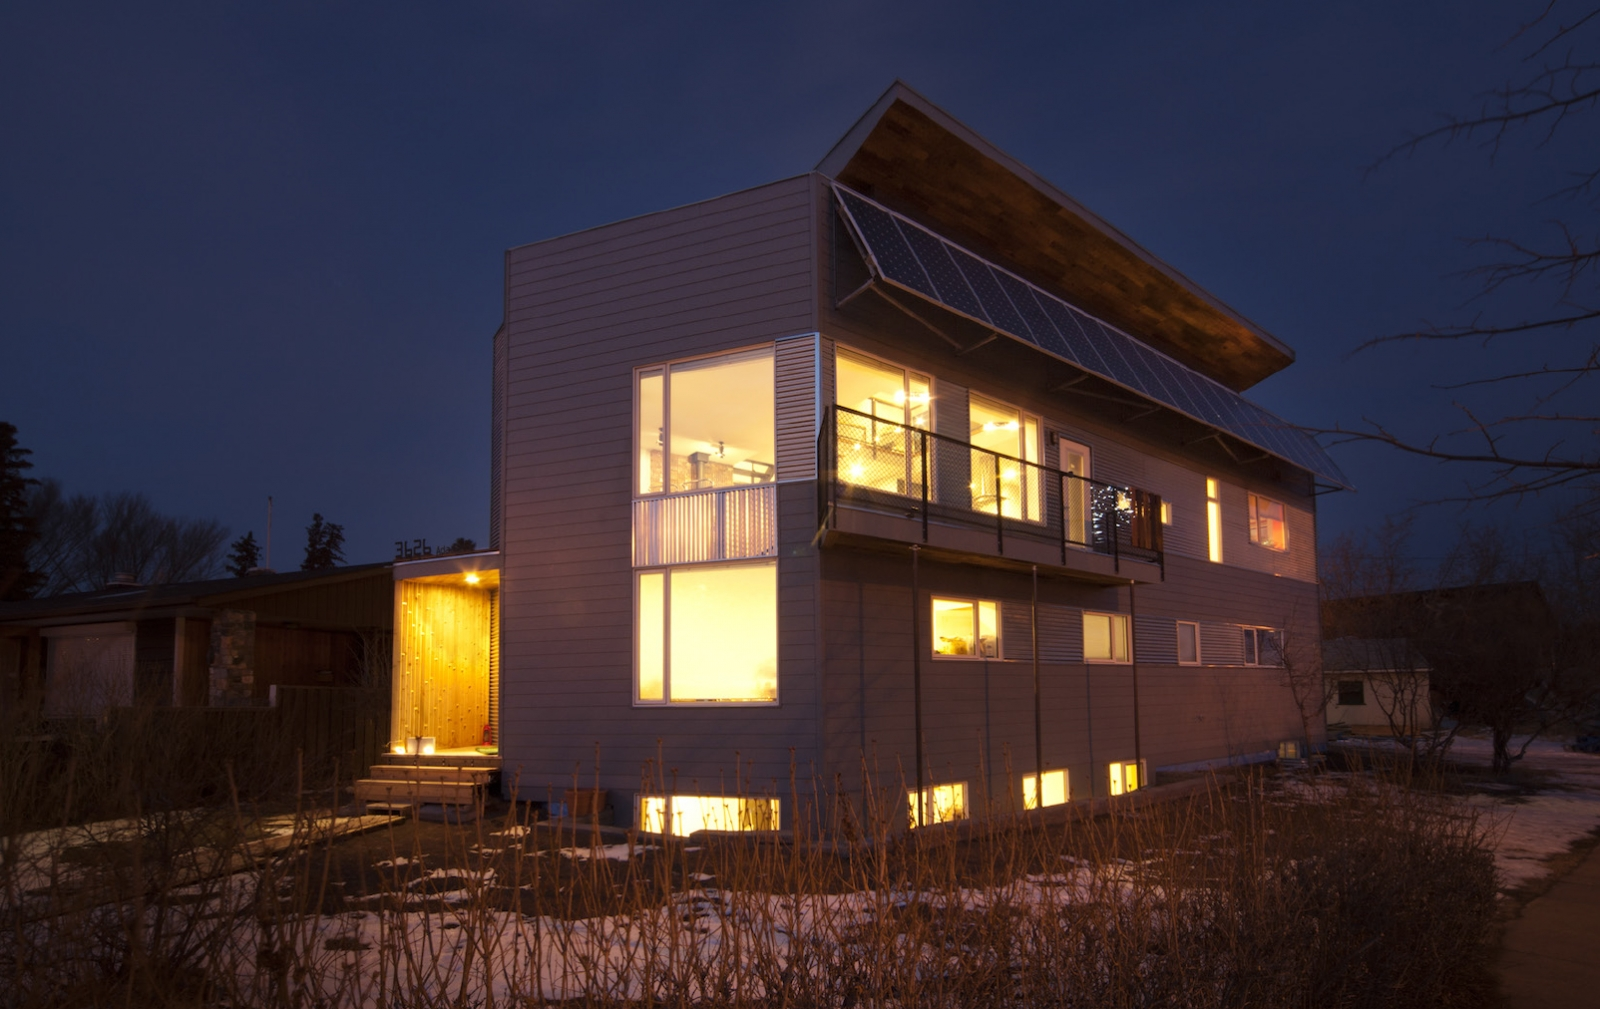 We have a 4.8 kW solar array and created a passive solar design.